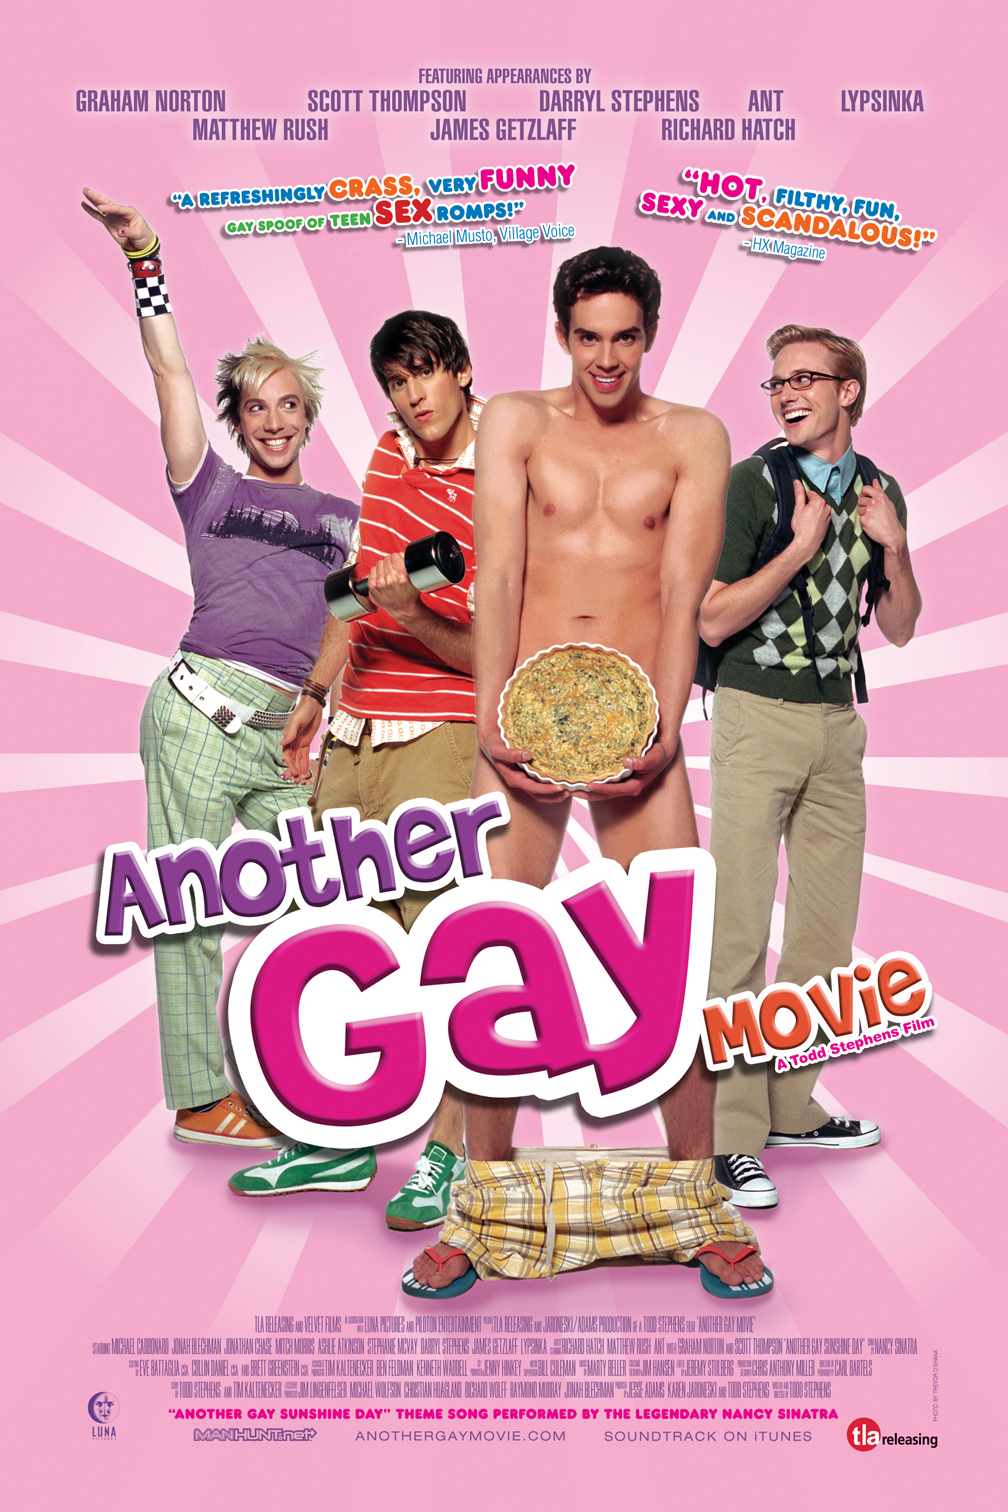 Waech not another gay movie